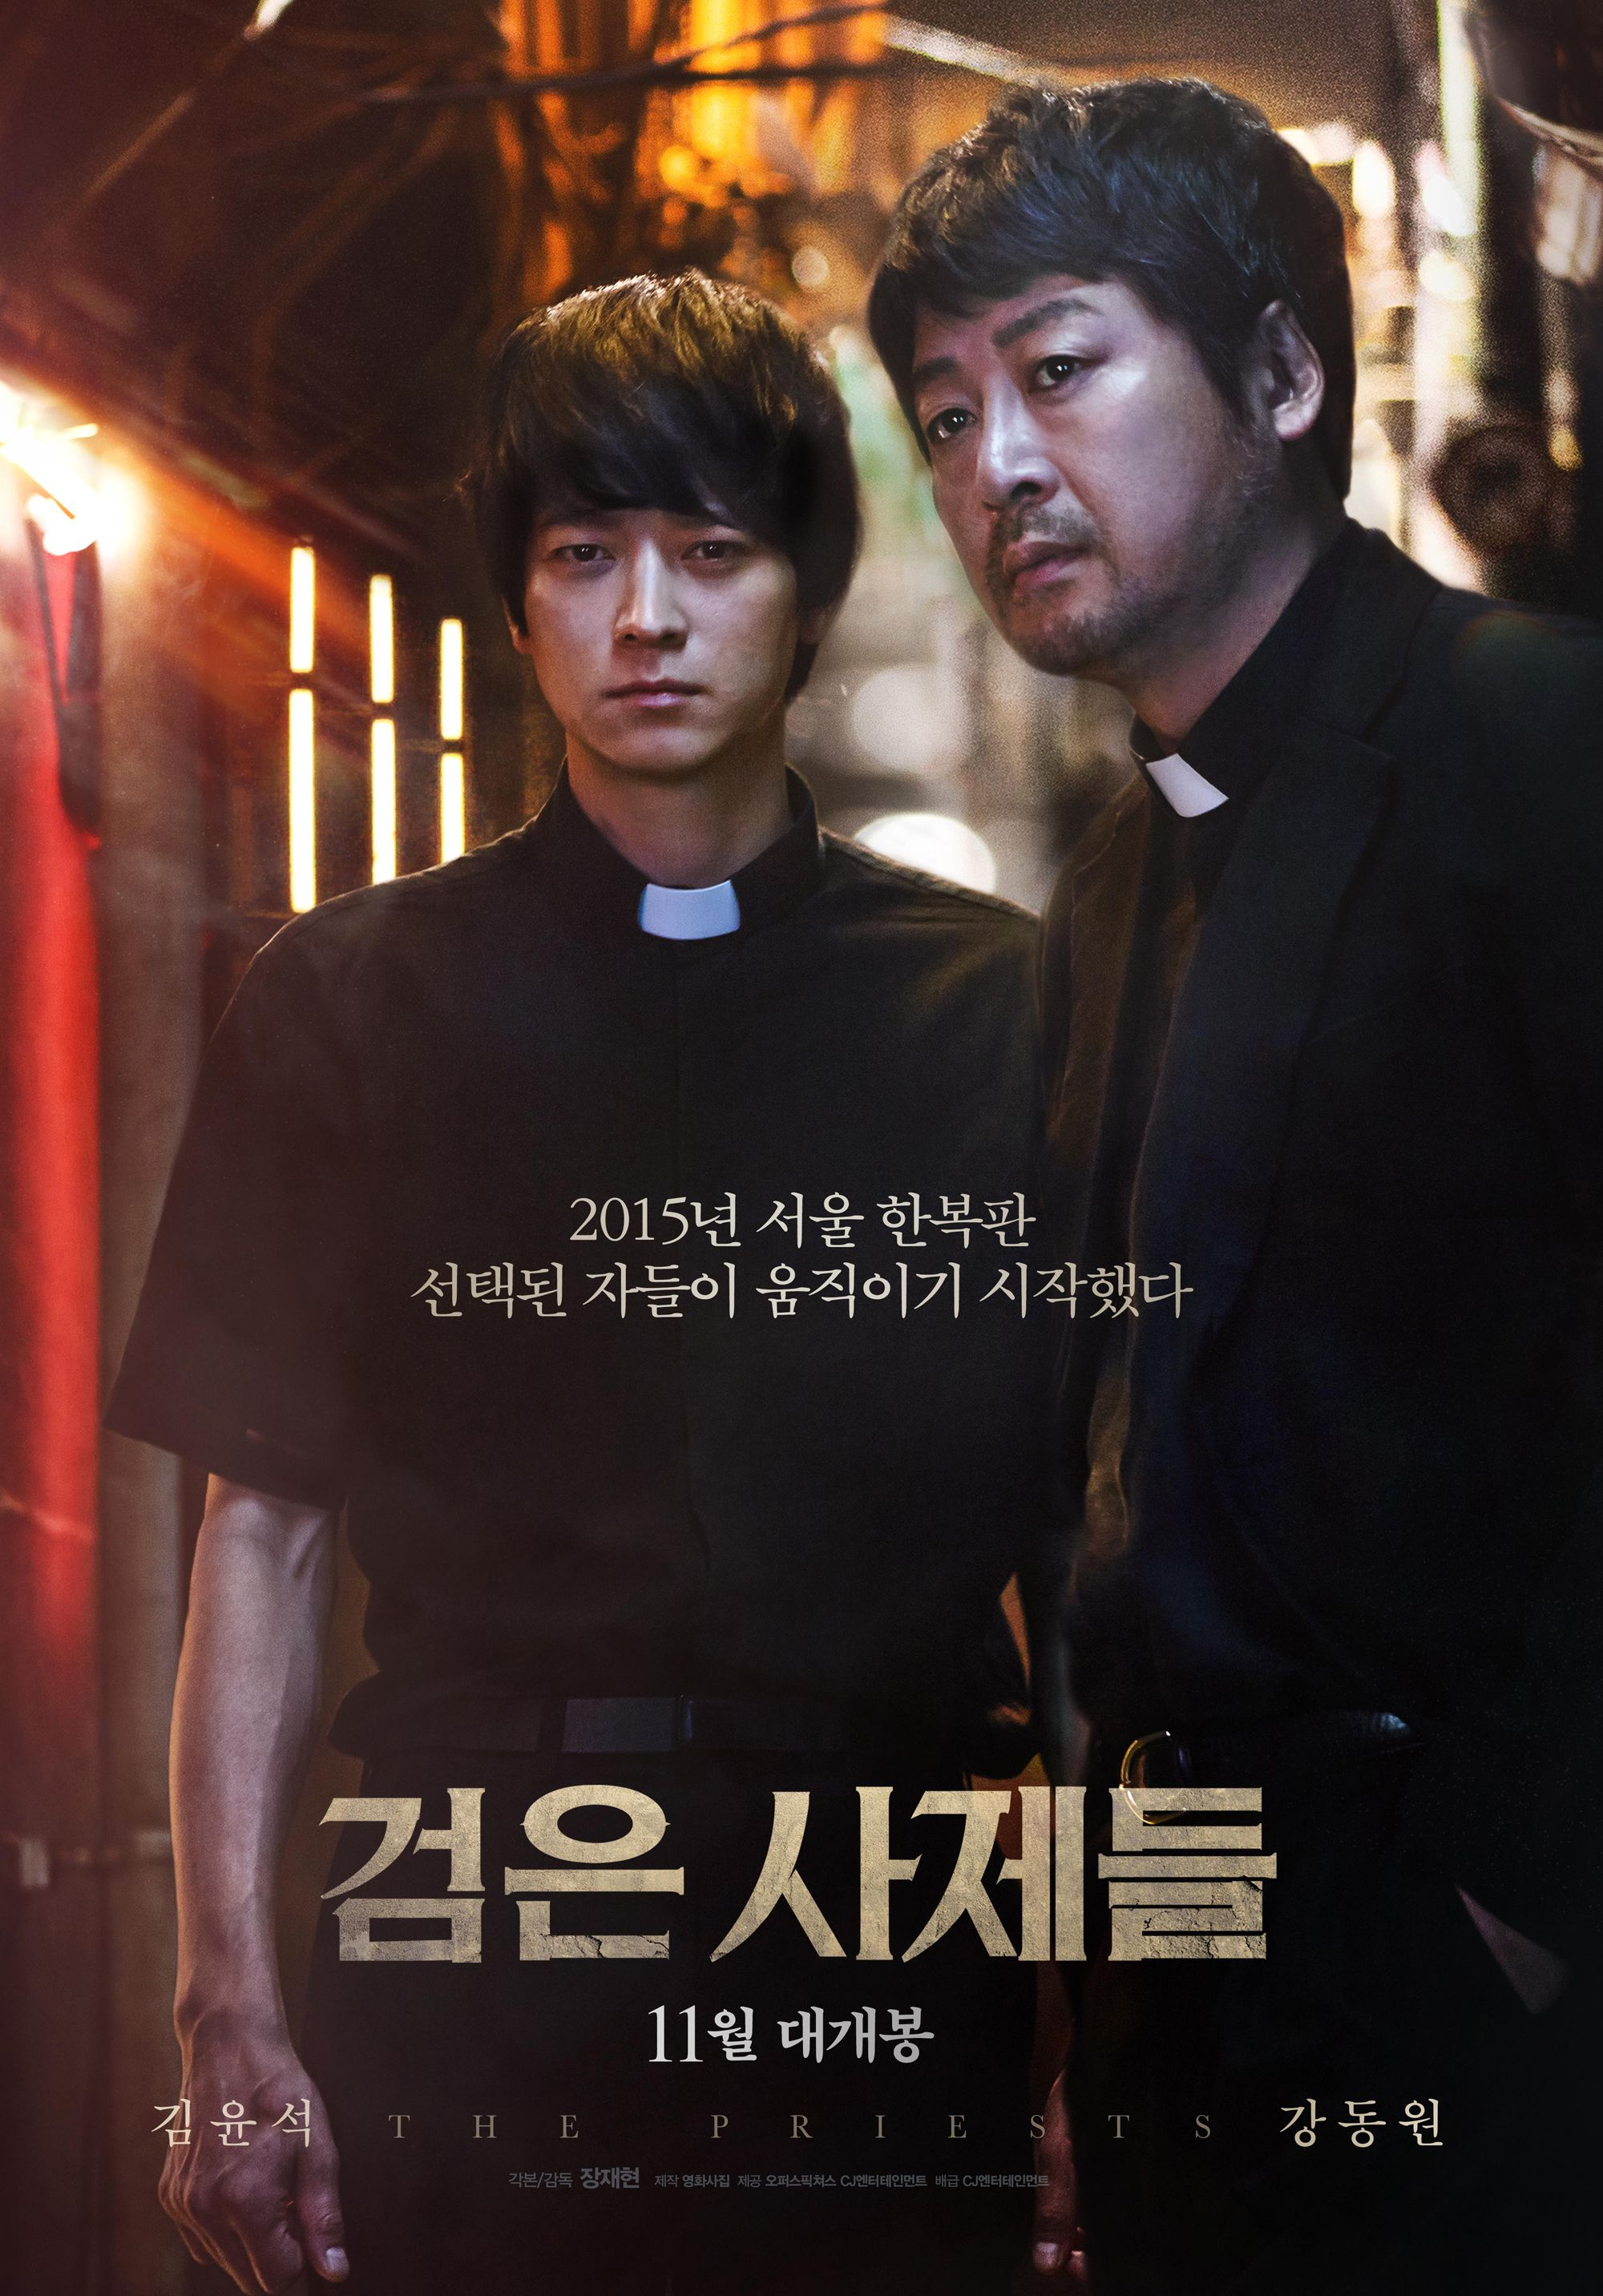 affiche du film The Priests